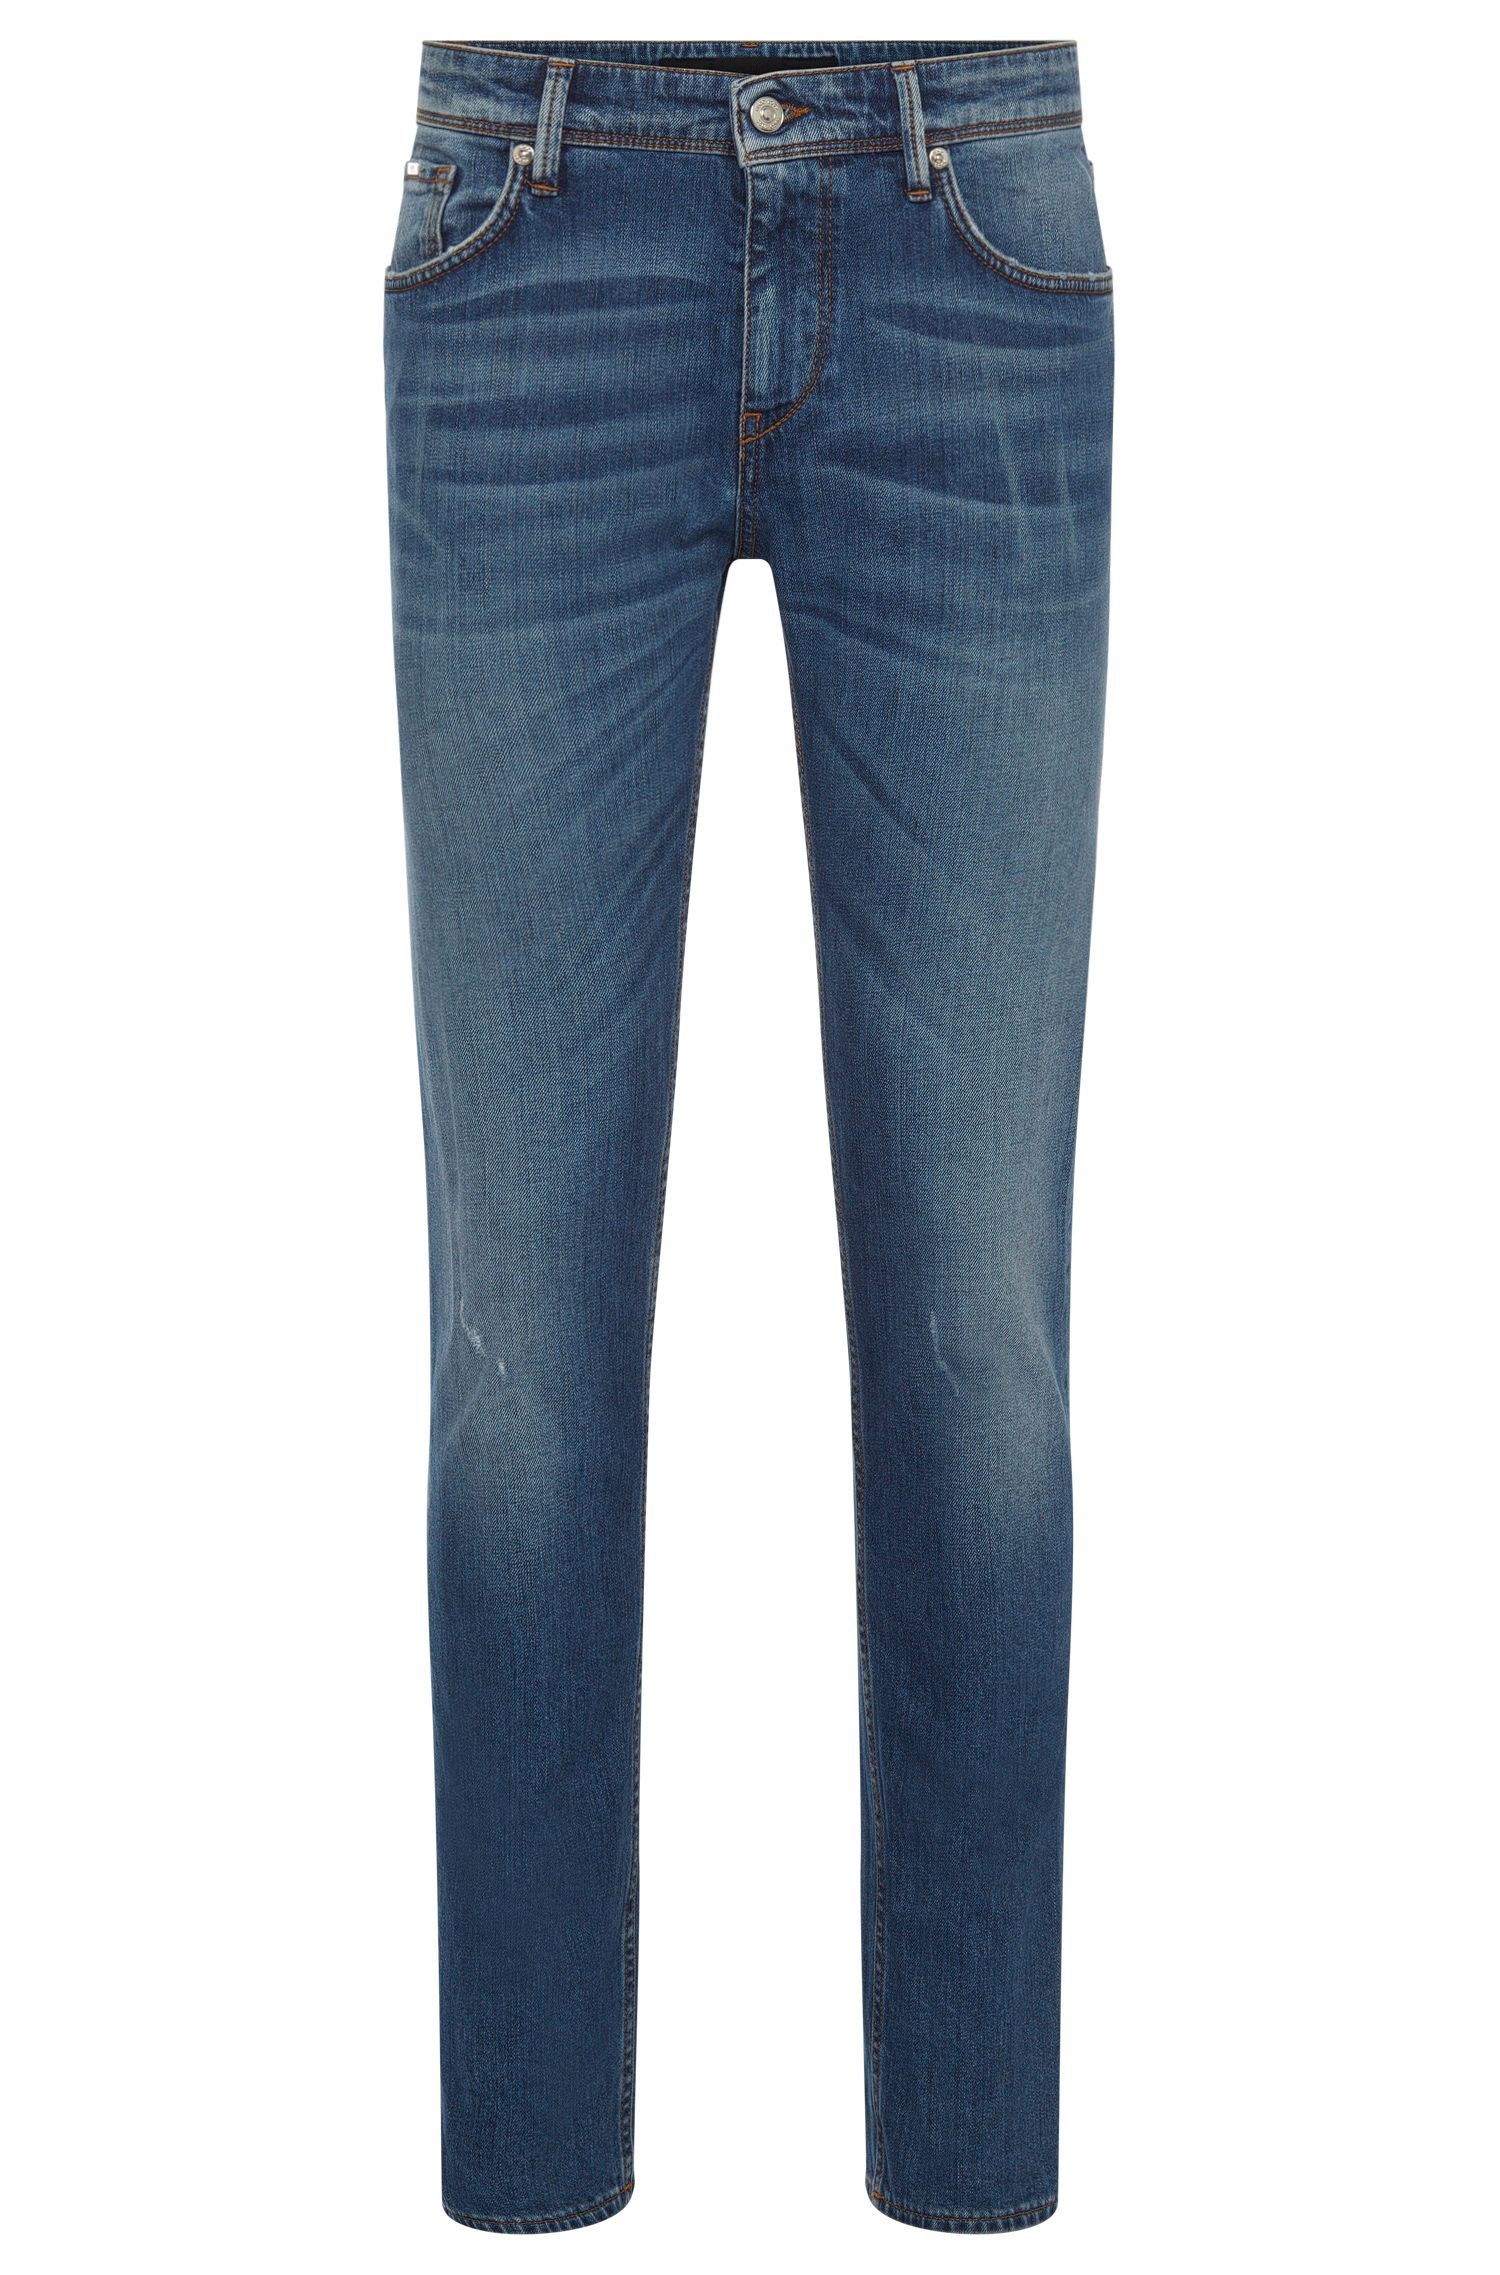 Jeans Slim Fit en denim stretch délavé